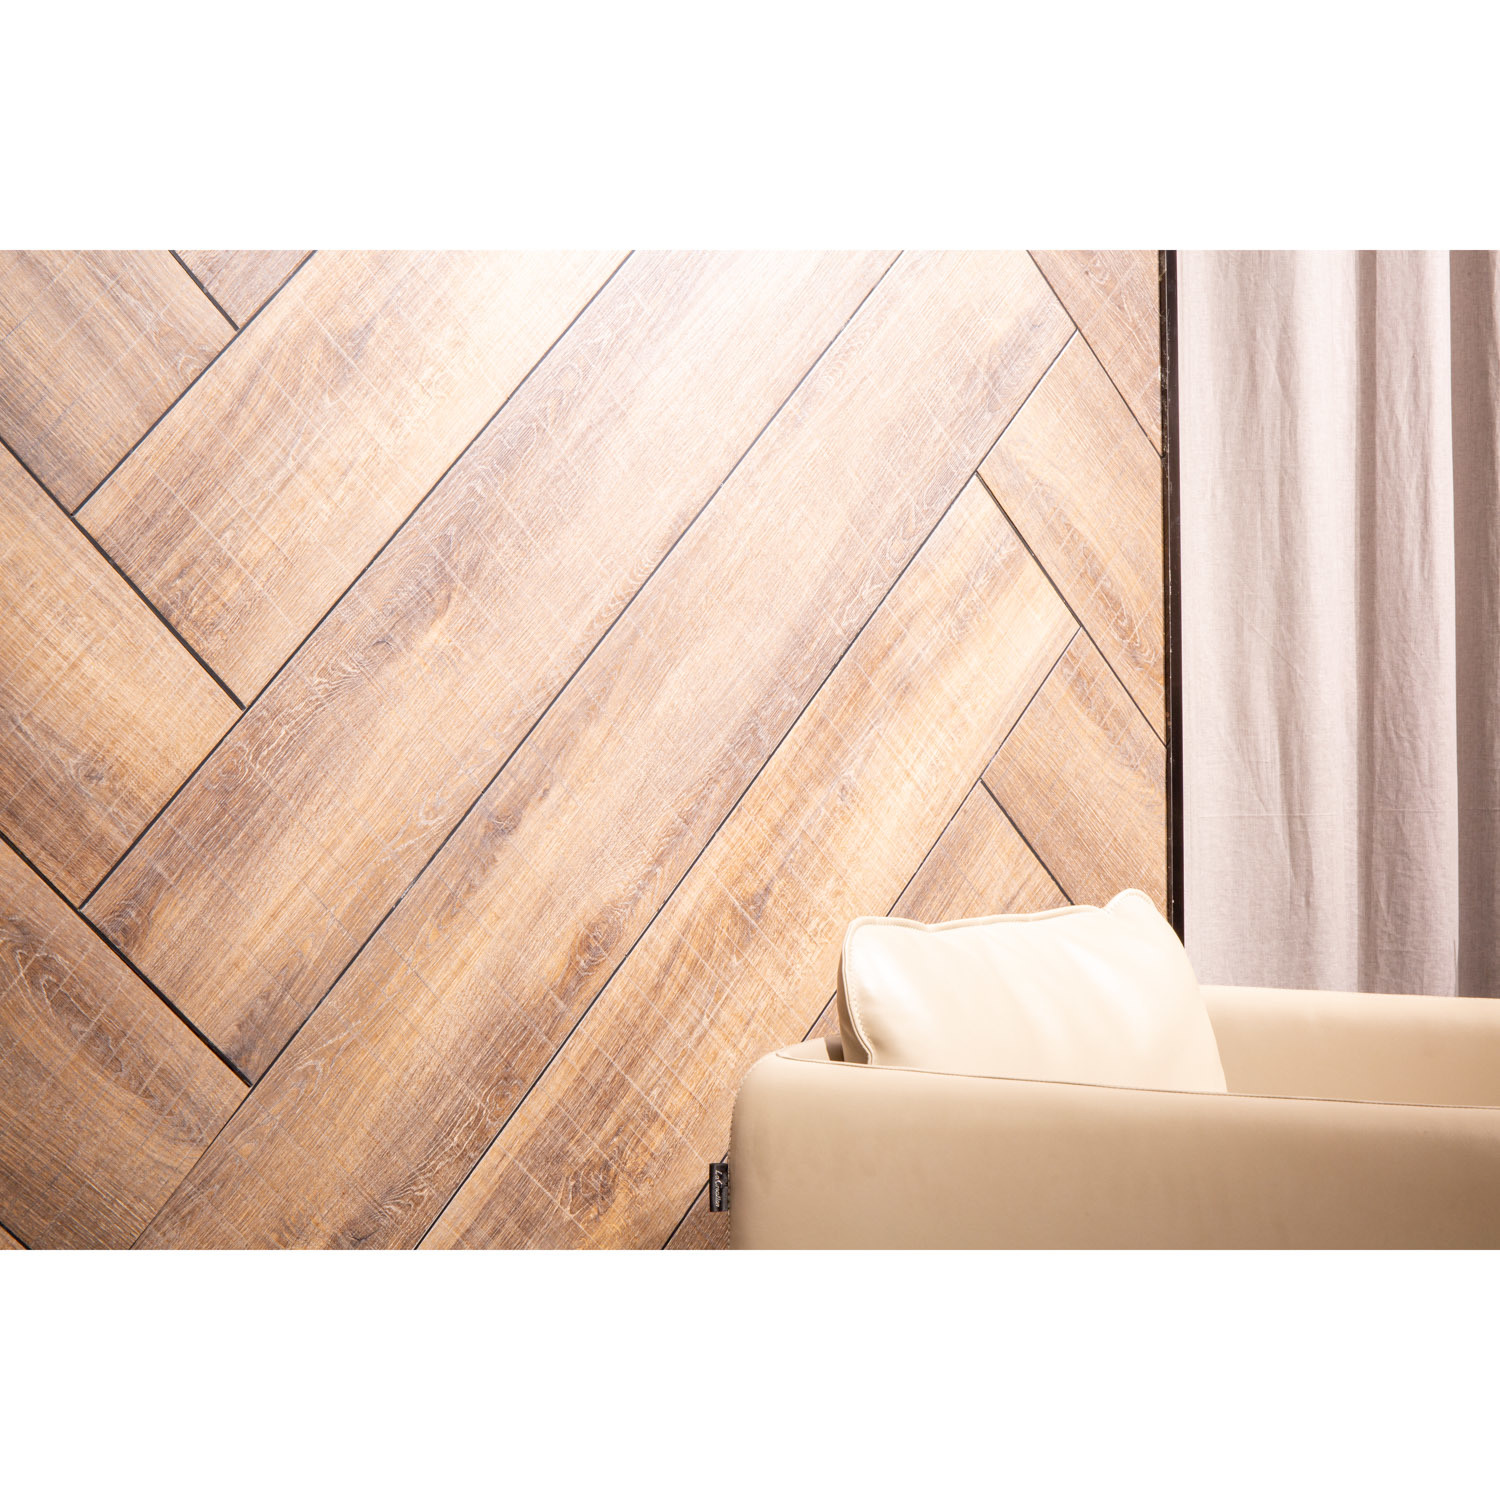 [Hot Item] Wood Design Spc WPC PVC Plastic Vspc Floor Flooring